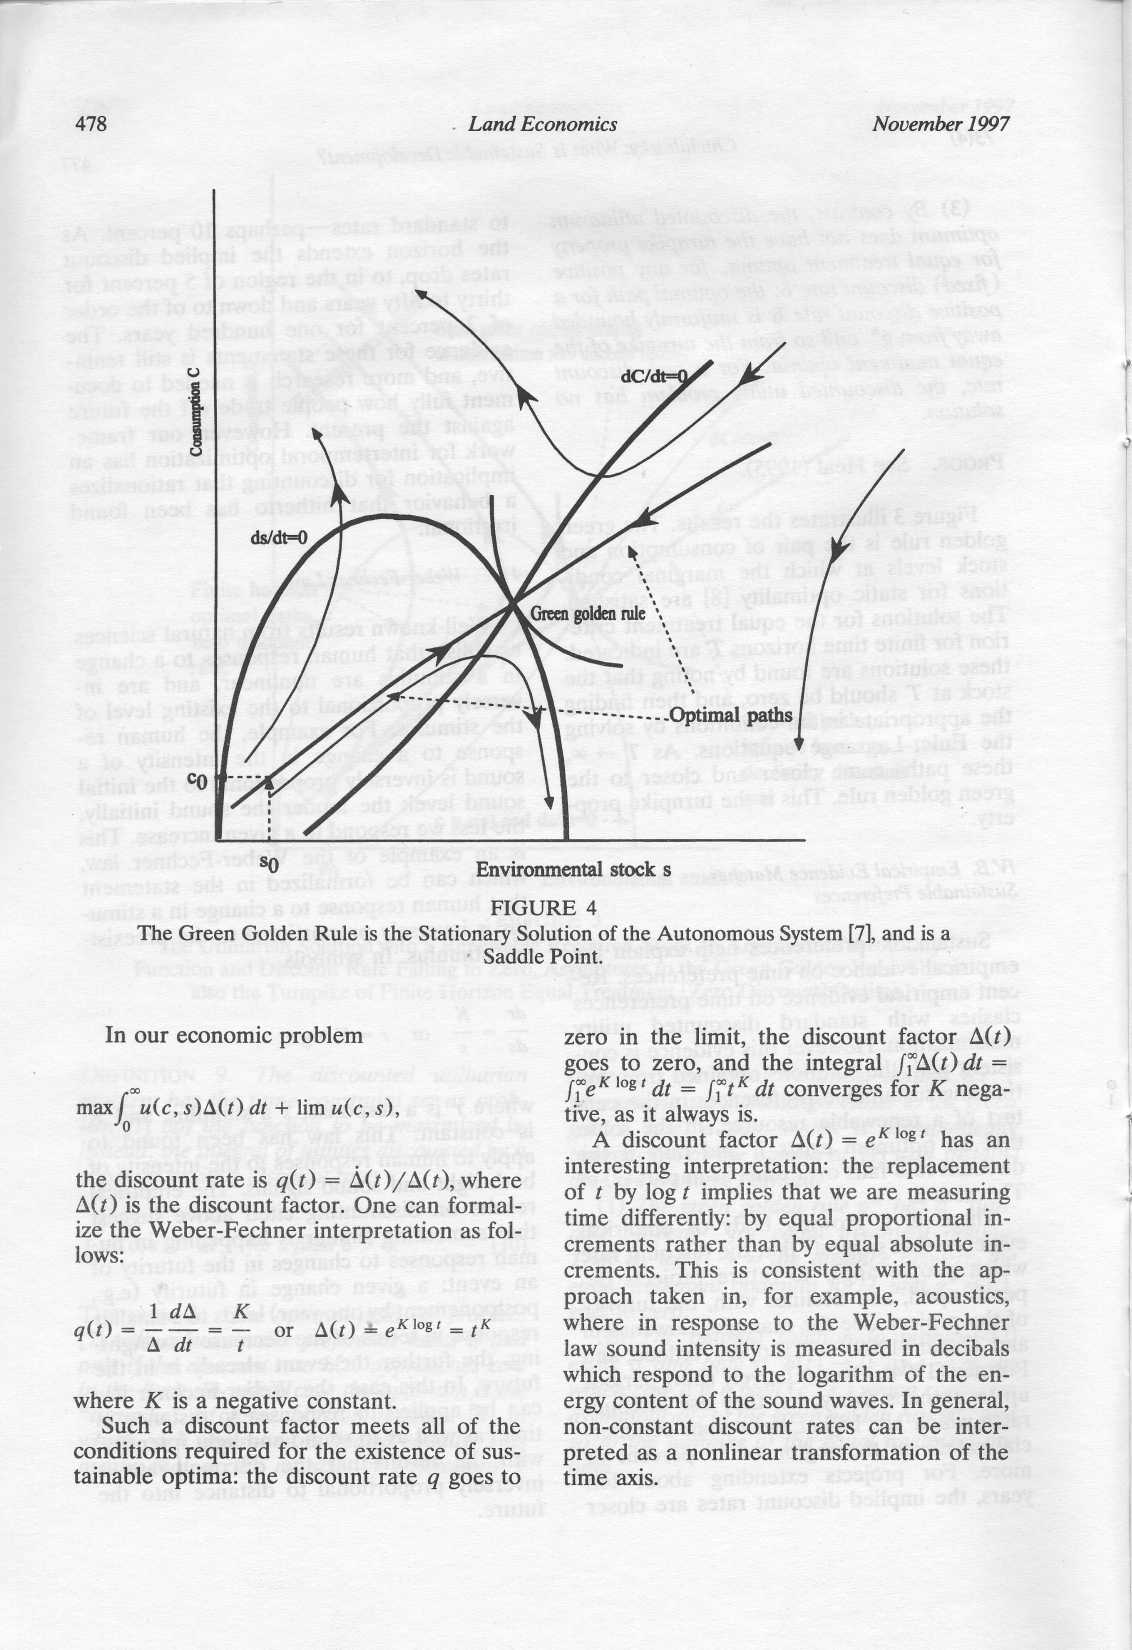 478 Land Economics November 1997 SO Environmental stock s FIGURE 4 The Green Golden Rule is the Stationary Solution of the Autonomous System [7], and is a Saddle Point.